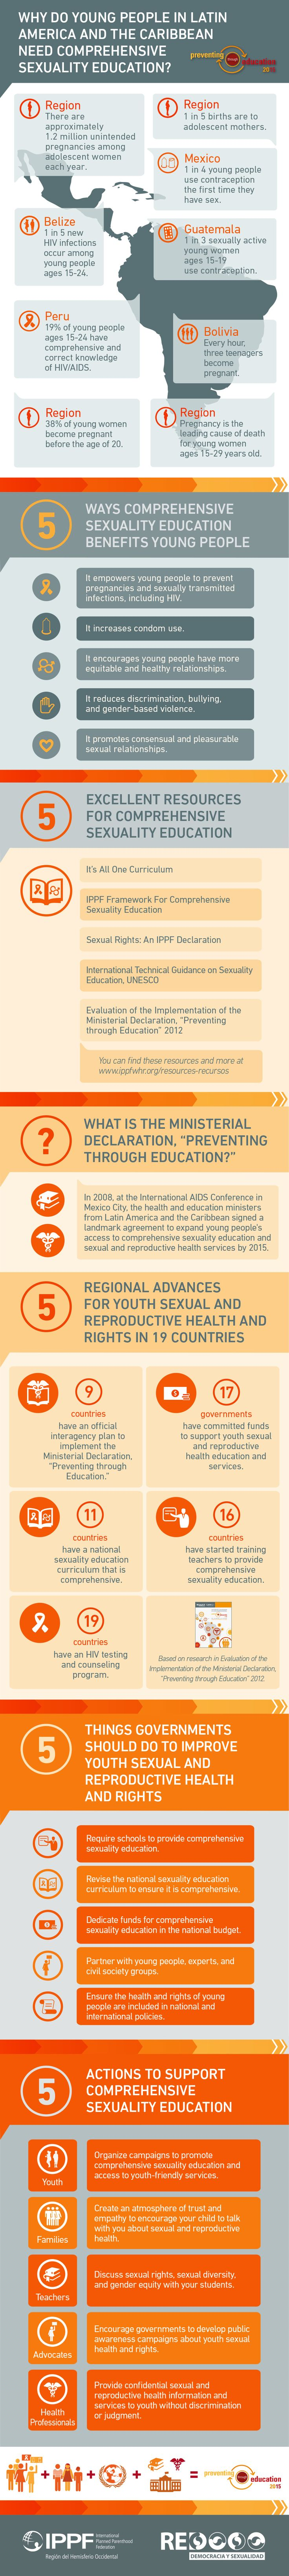 Infographic: Why do young people in Latin America and the Caribbean need comprehensive sexuality education?